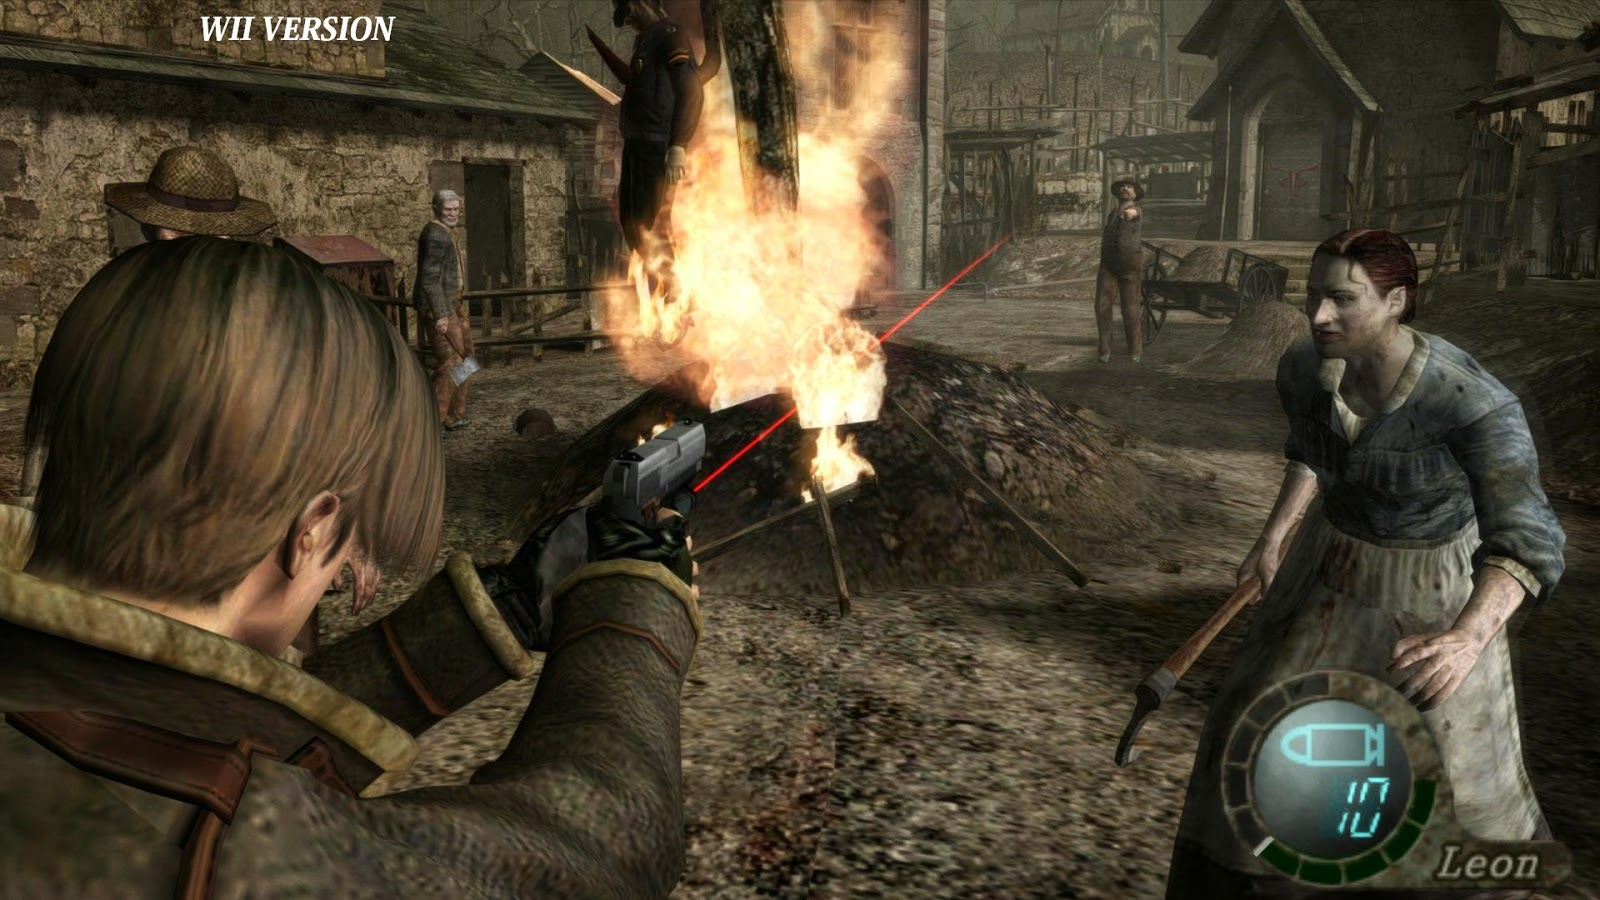 Resident evil 4 full savagame file unlimited ammohealth